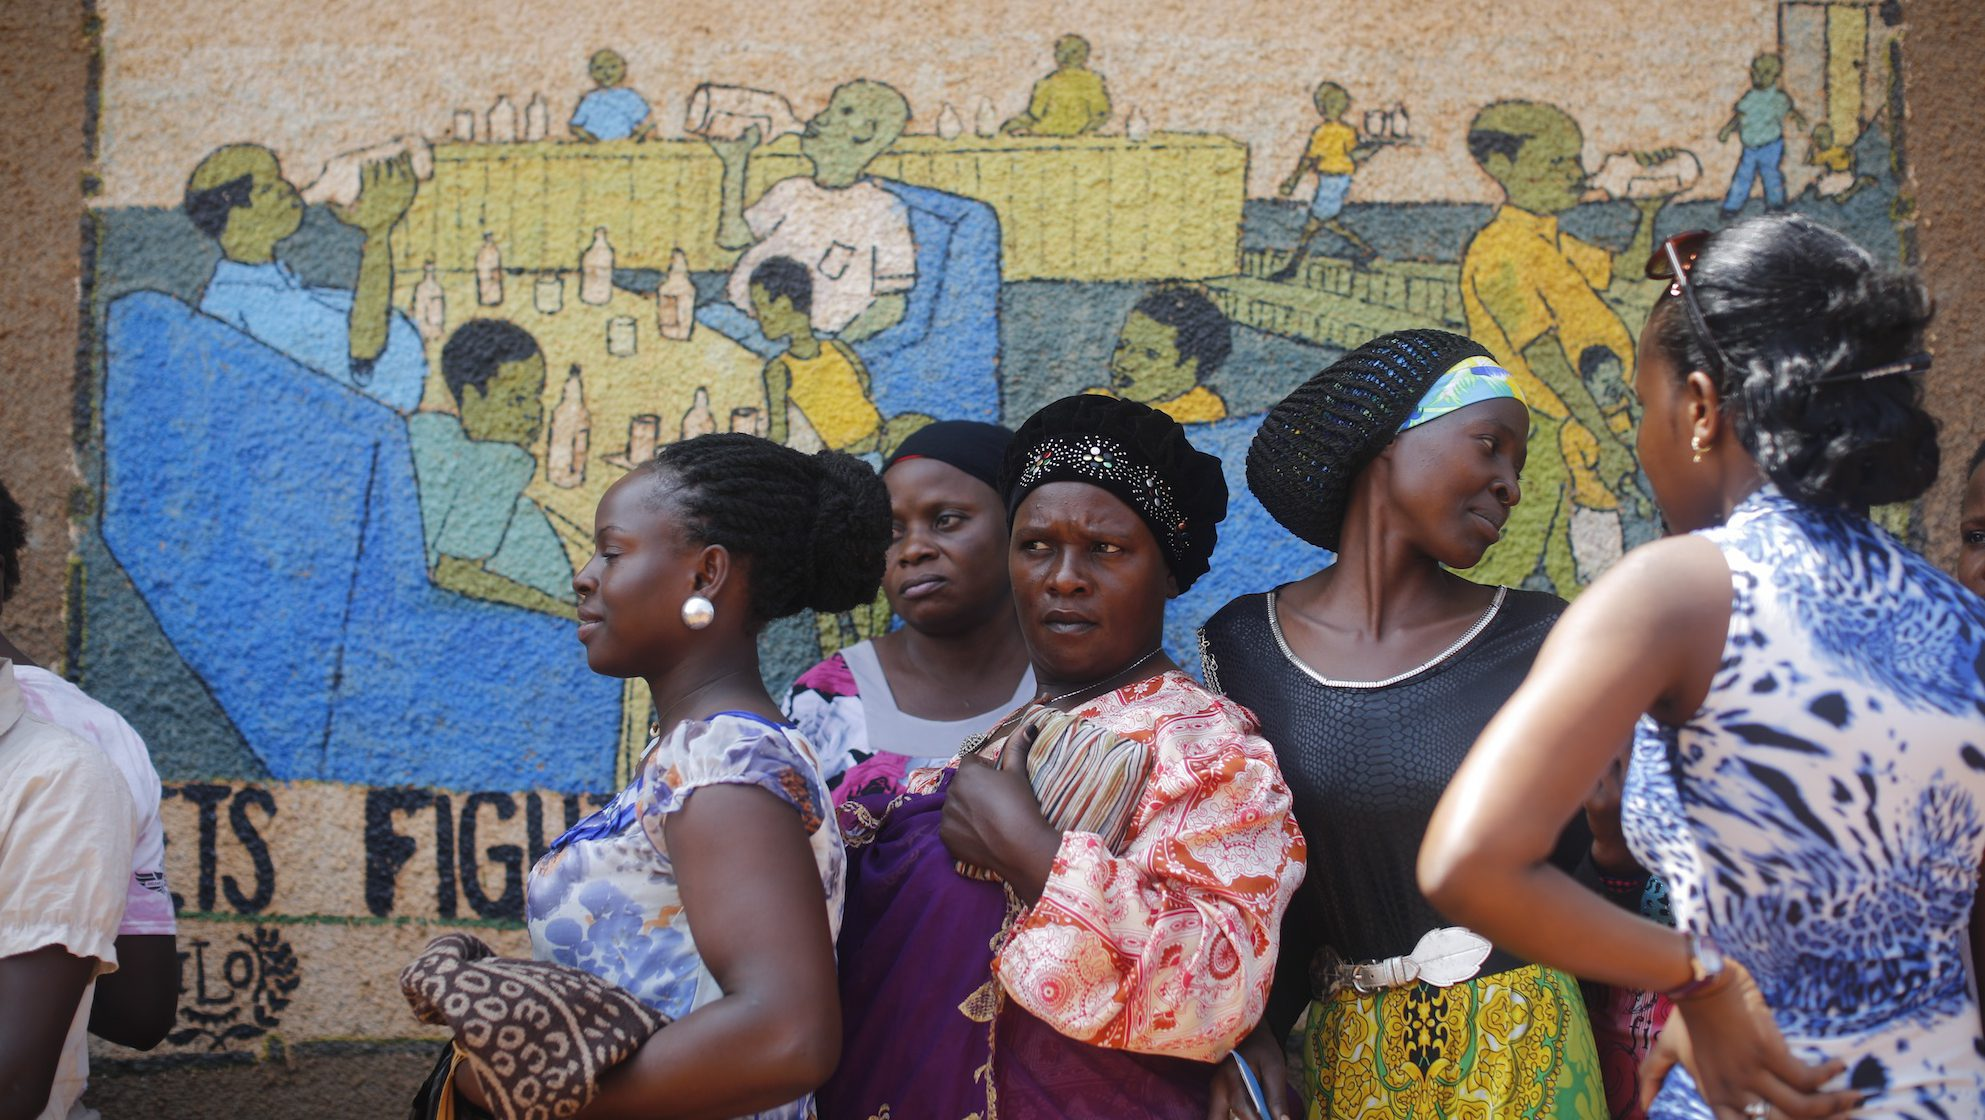 Women in Uganda wait in a line to cast their votes in a parliamentary election in February 2016.